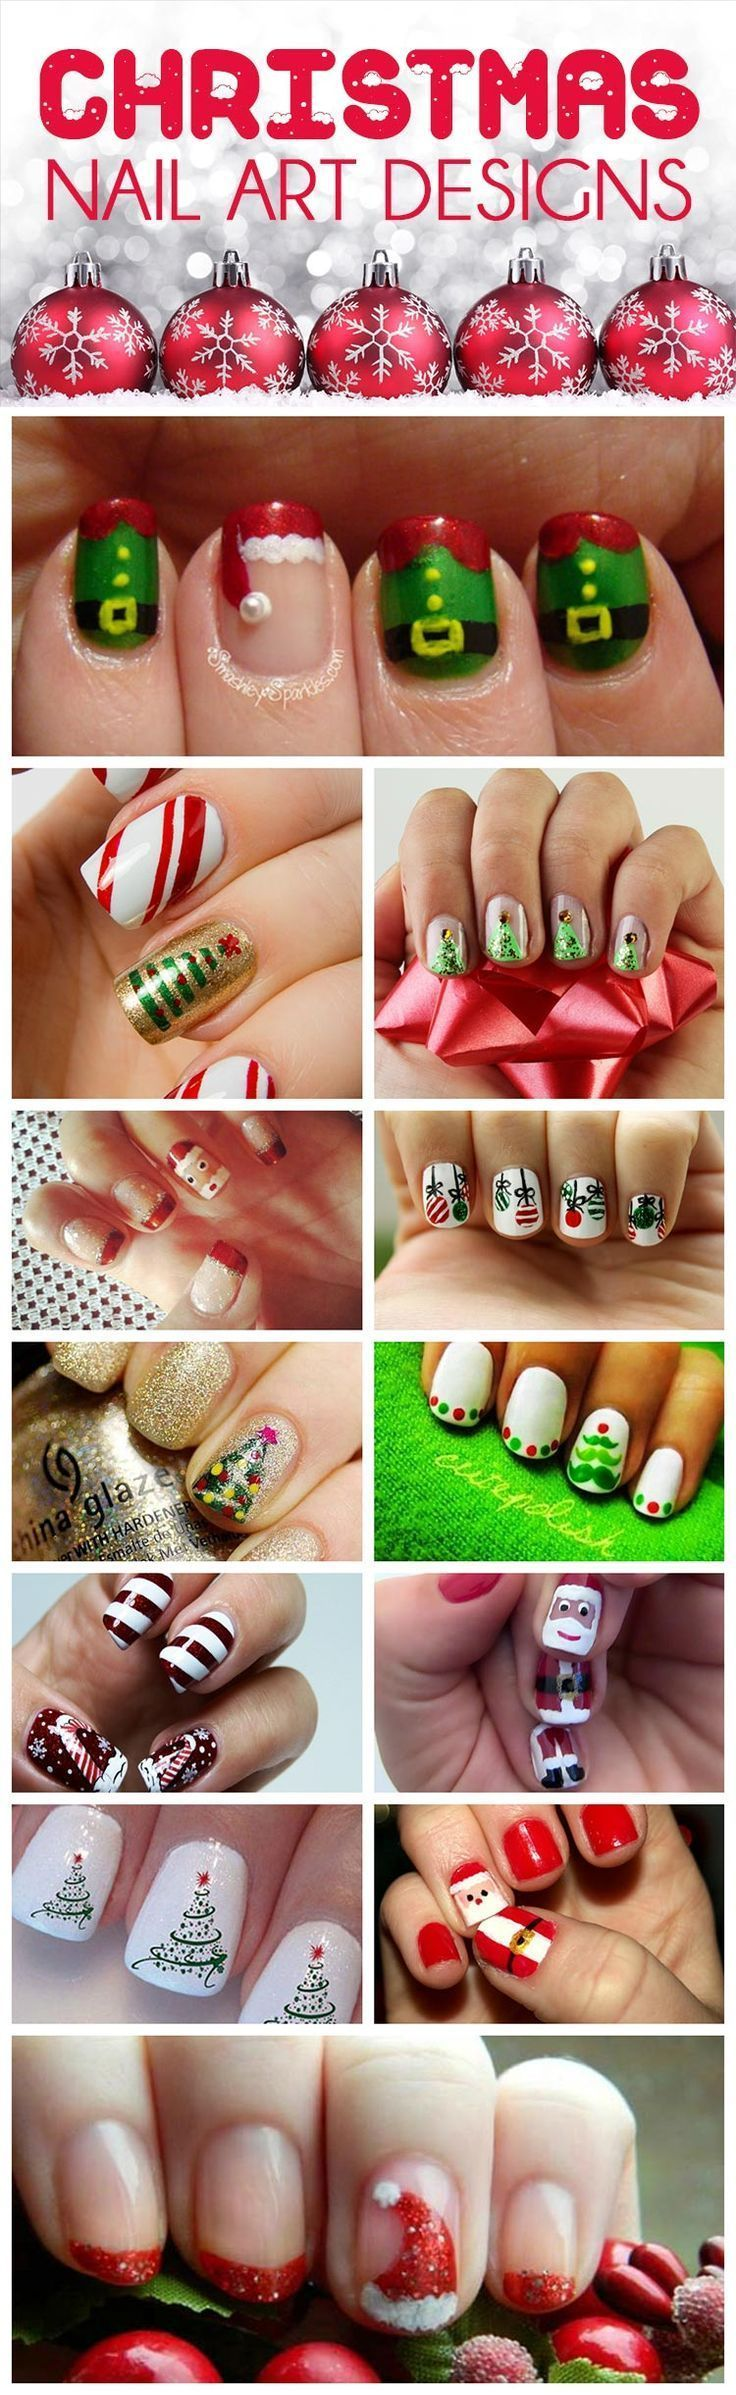 20 Fabulous and Easy DIY Christmas Nail Art Design Tutorials - Nagel ...